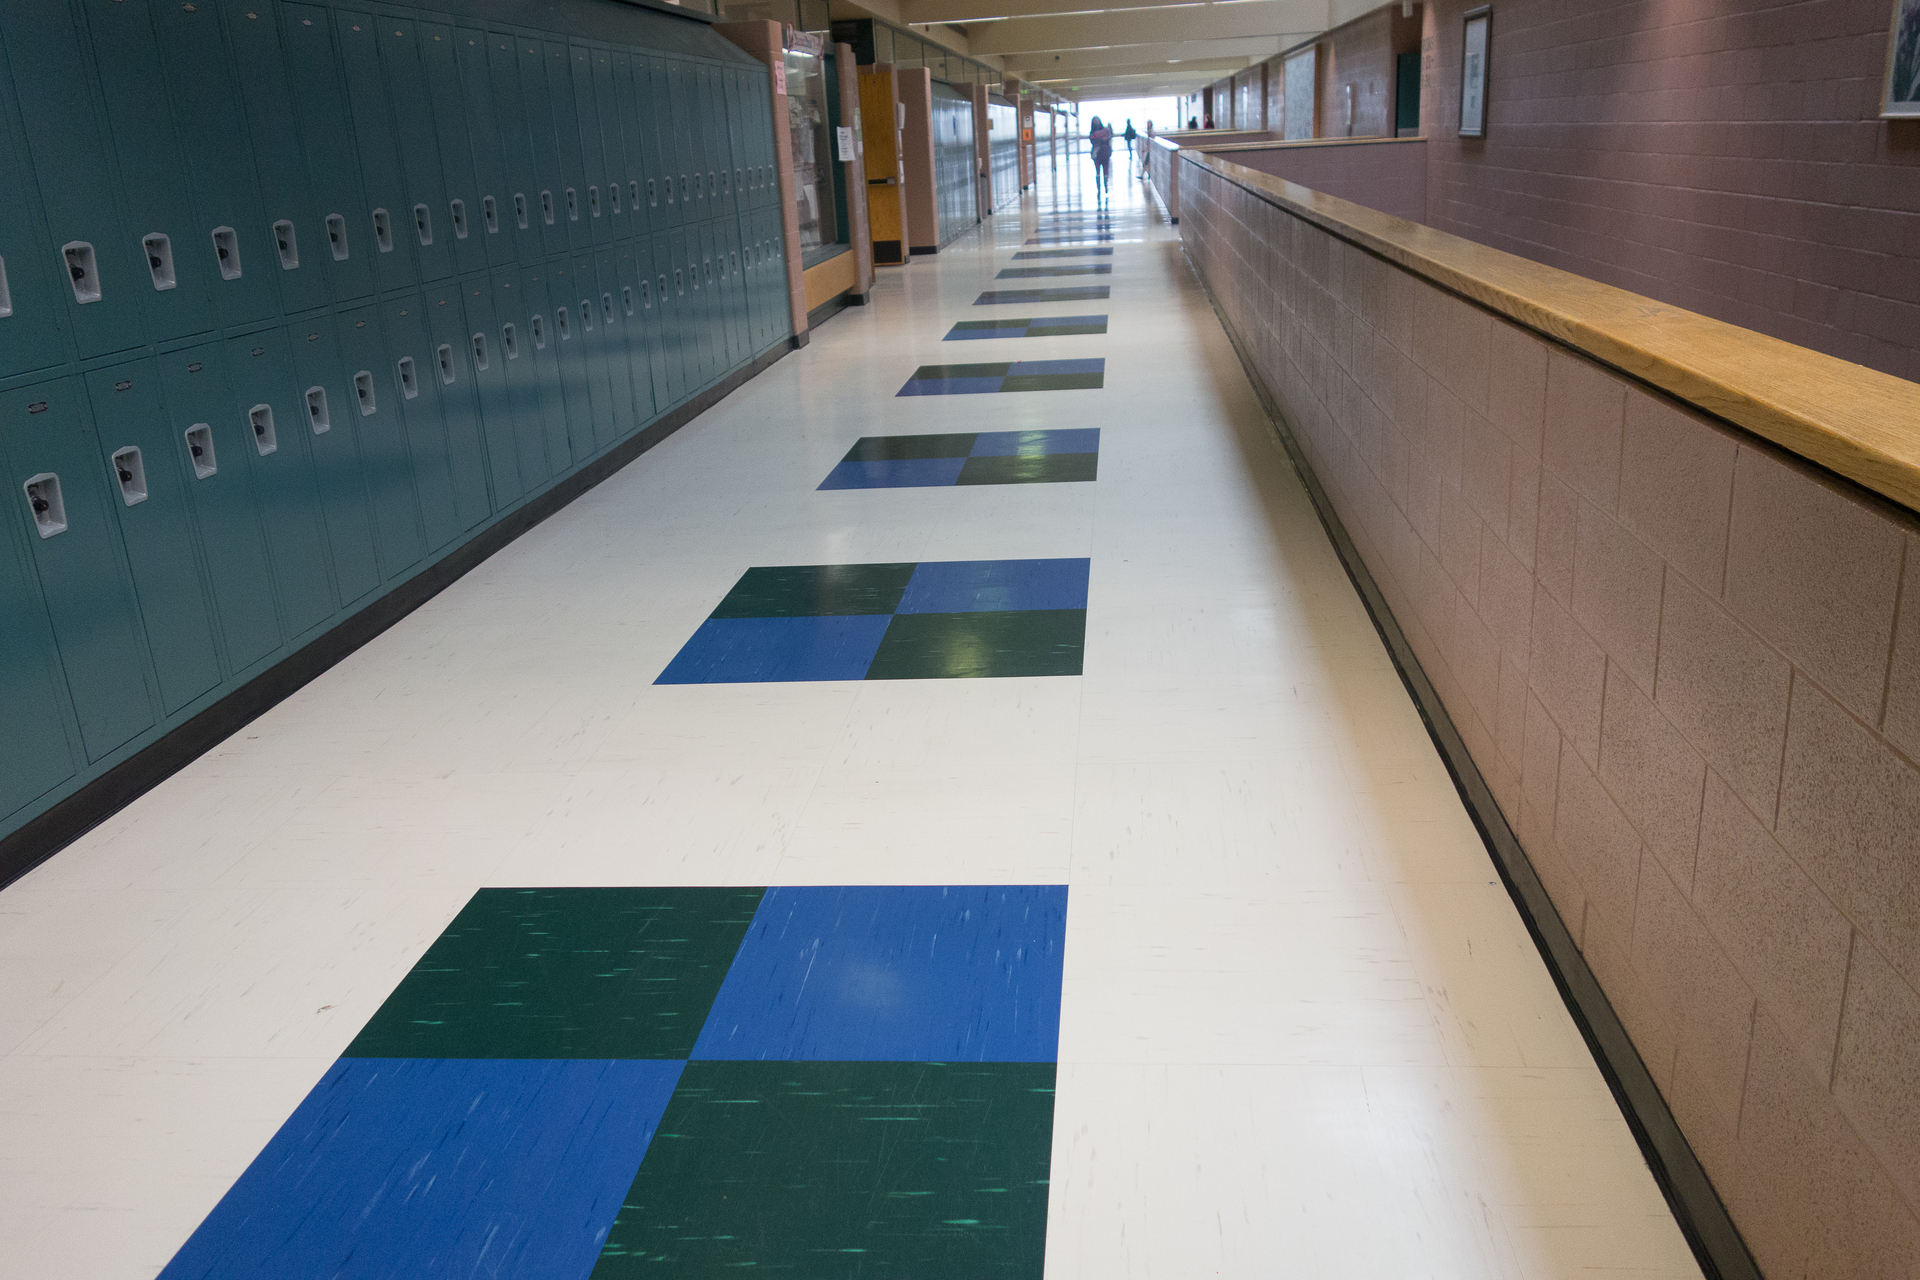 Standley Lake High School features different colored tile faces that showcase the school's colors. Our quartz tile features Rikettseal™, a commercial-grade UV cured polyurethane coating that provides a durable, low-cost, no wax, easy maintenance flooring surface, which is ideal for high-traffic spaces.